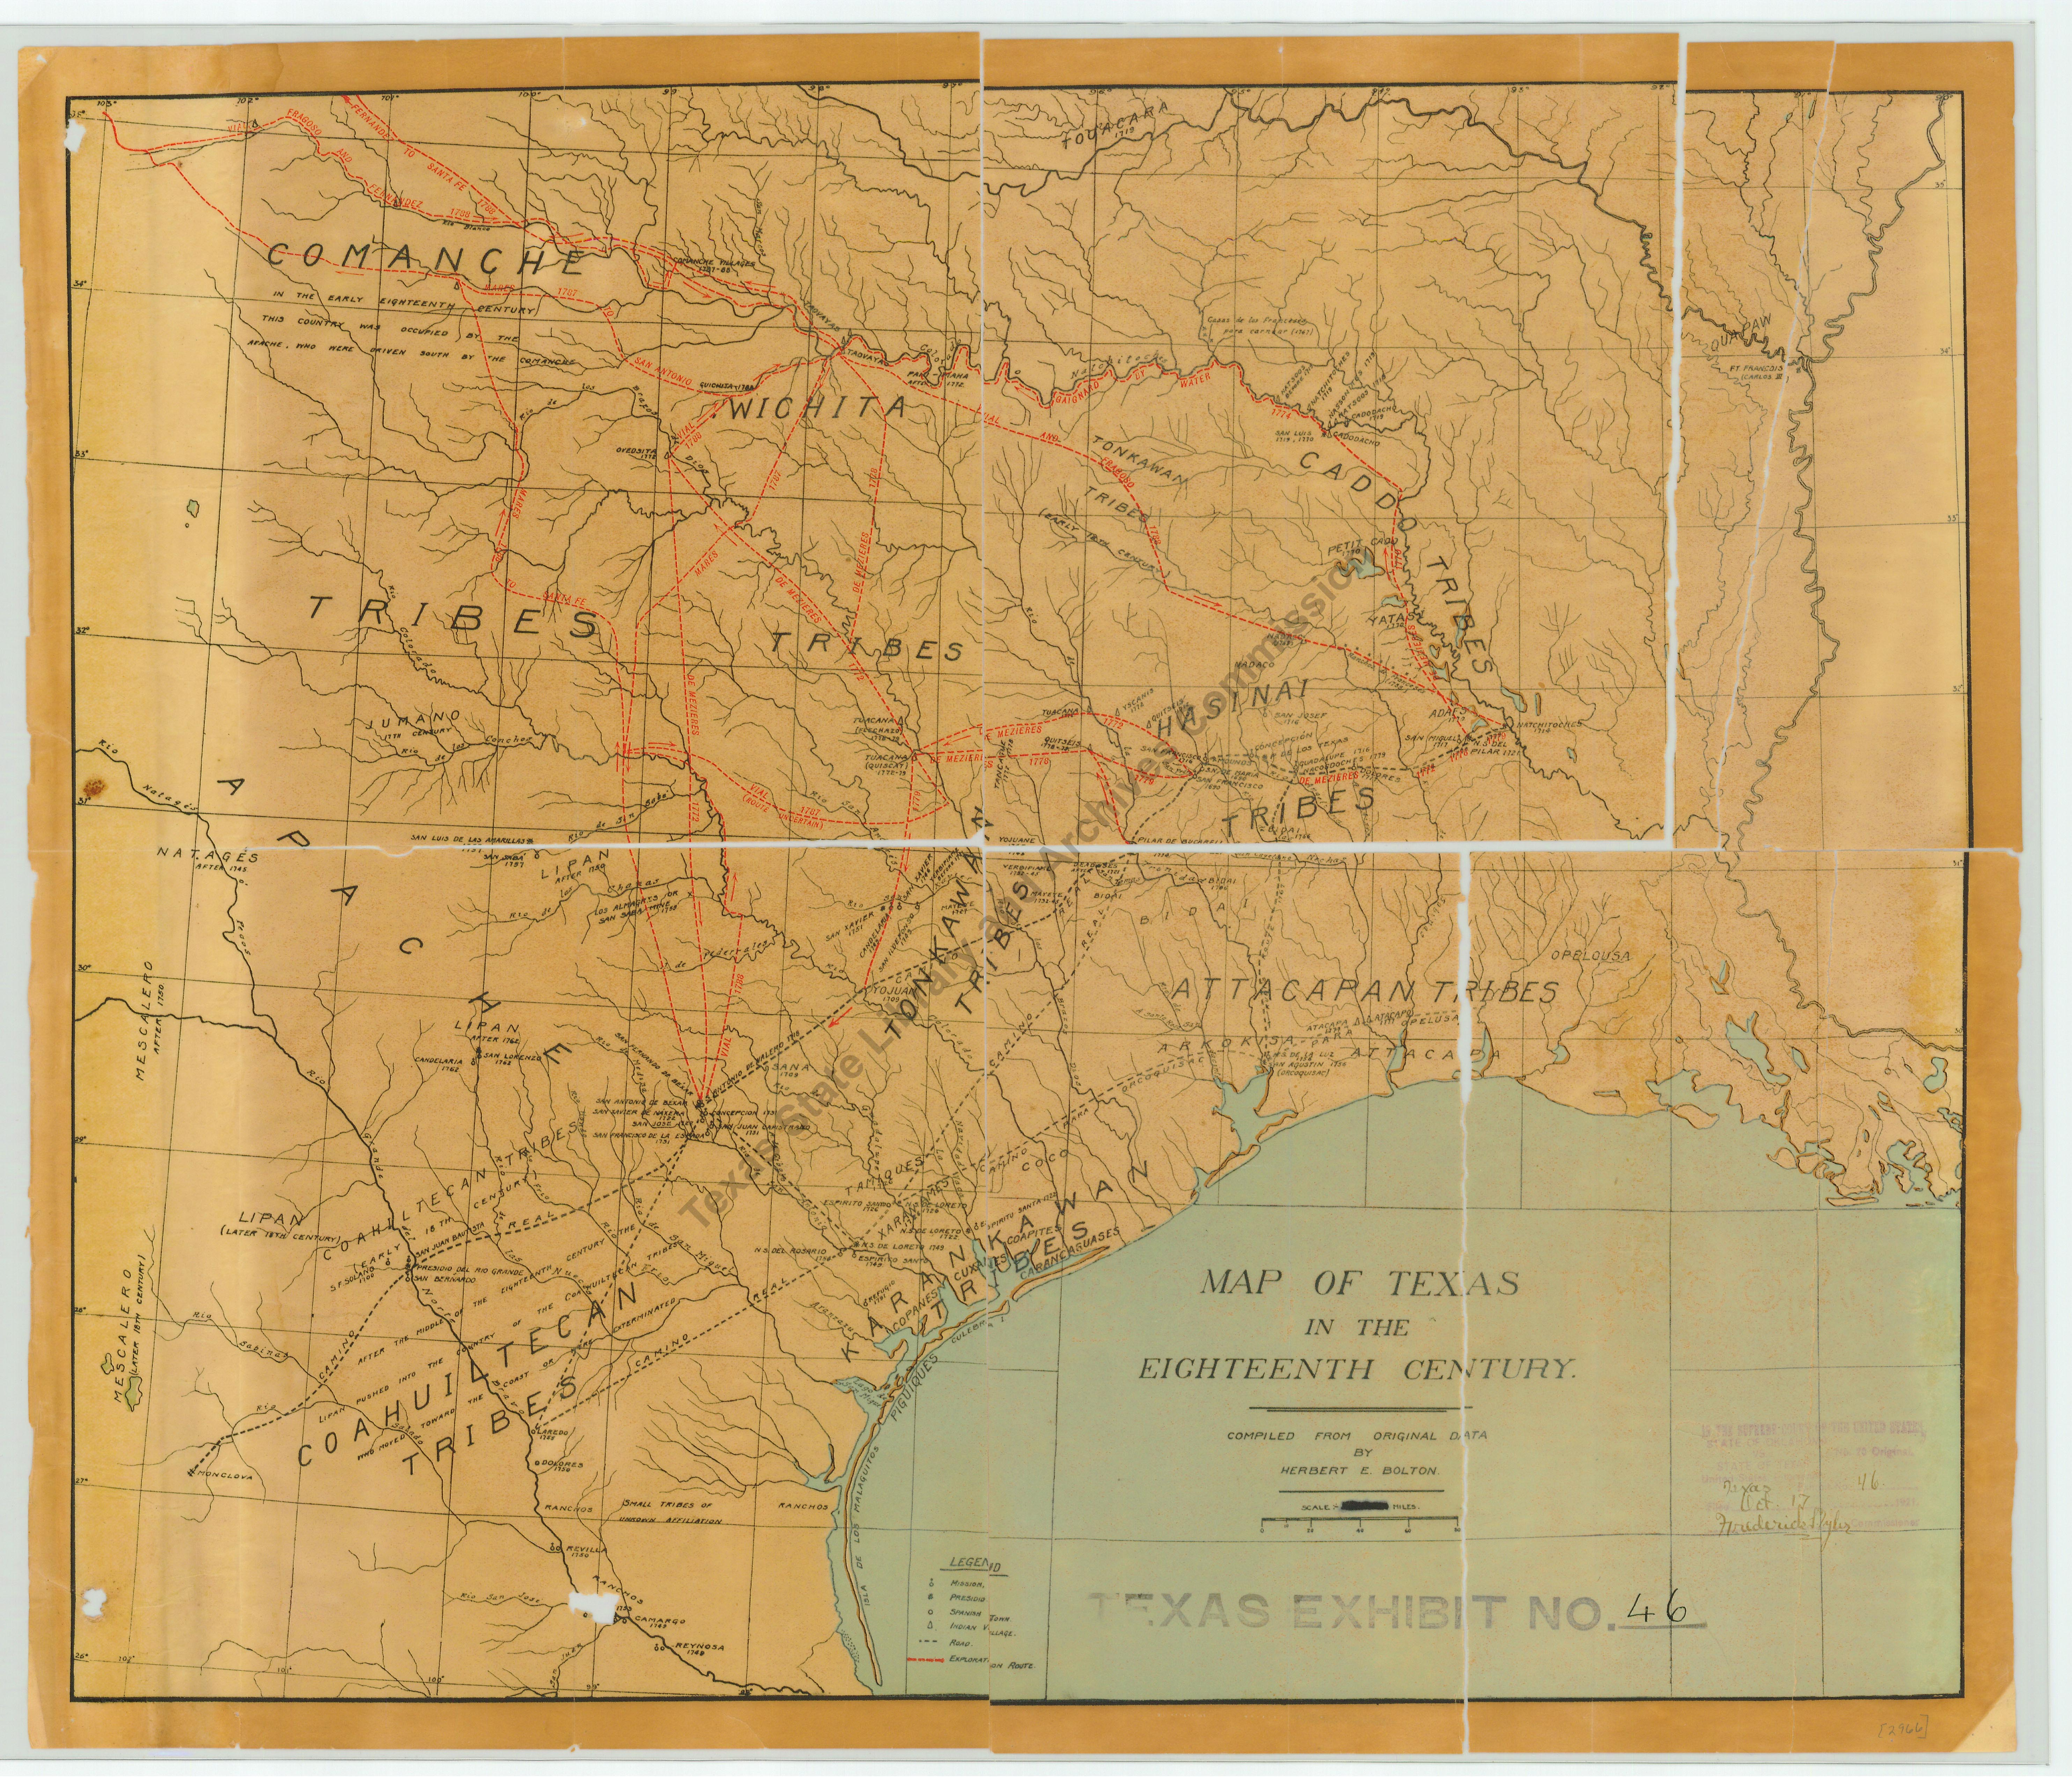 Texas History - Austin And Texas History - Information Guides At - Stephen F Austin Map Of Texas